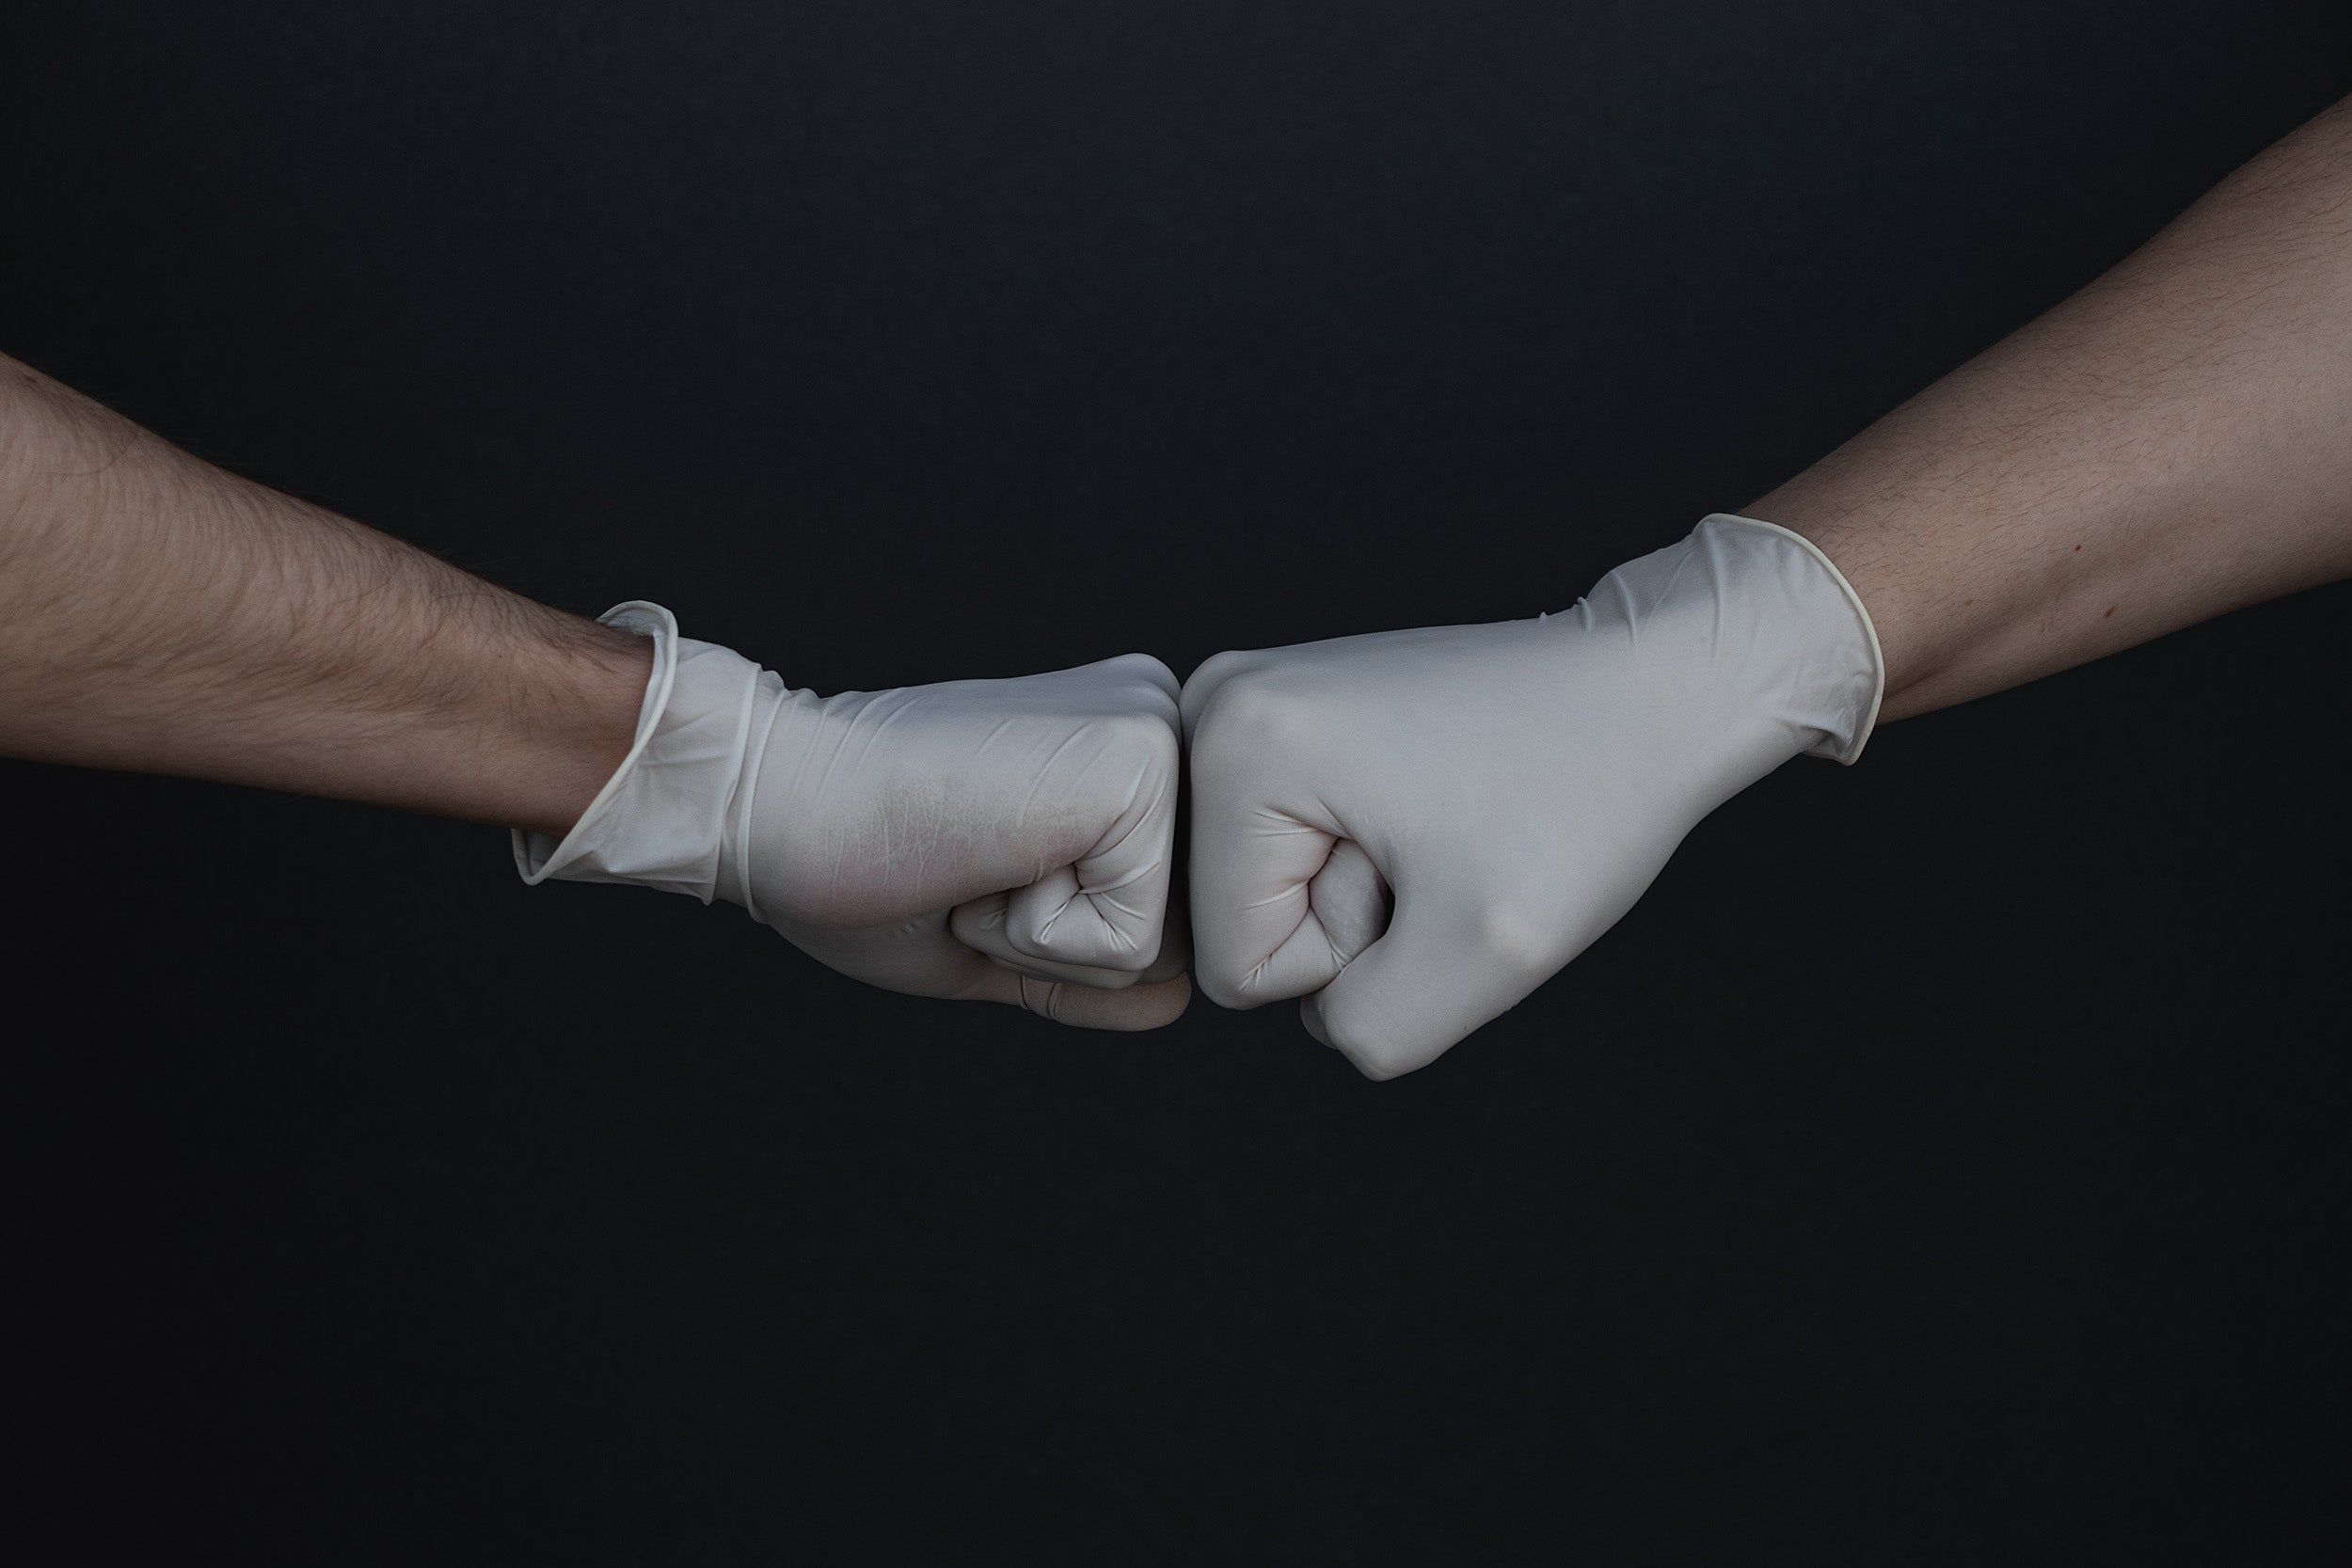 Fist bump wearing gloves.